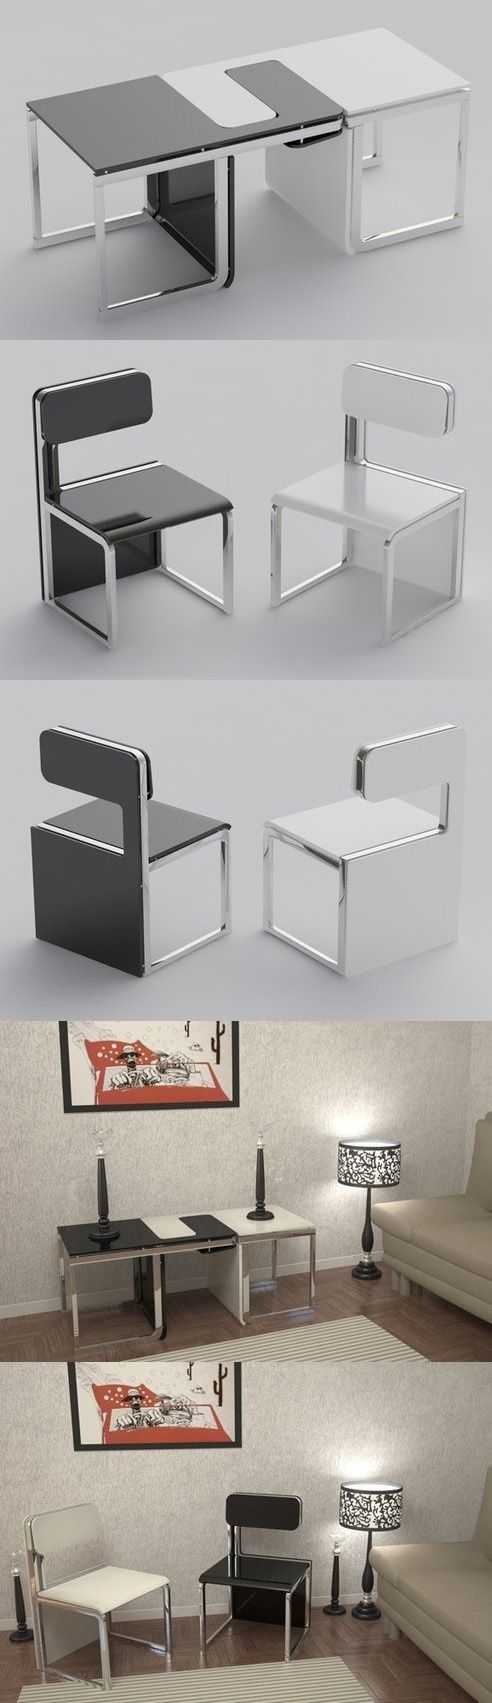 30 Awesome Multi-Functional Chairs for Your Small House https://www.futuristarchitecture.com/2682-multi-functional-chairs.html #furniture #chair